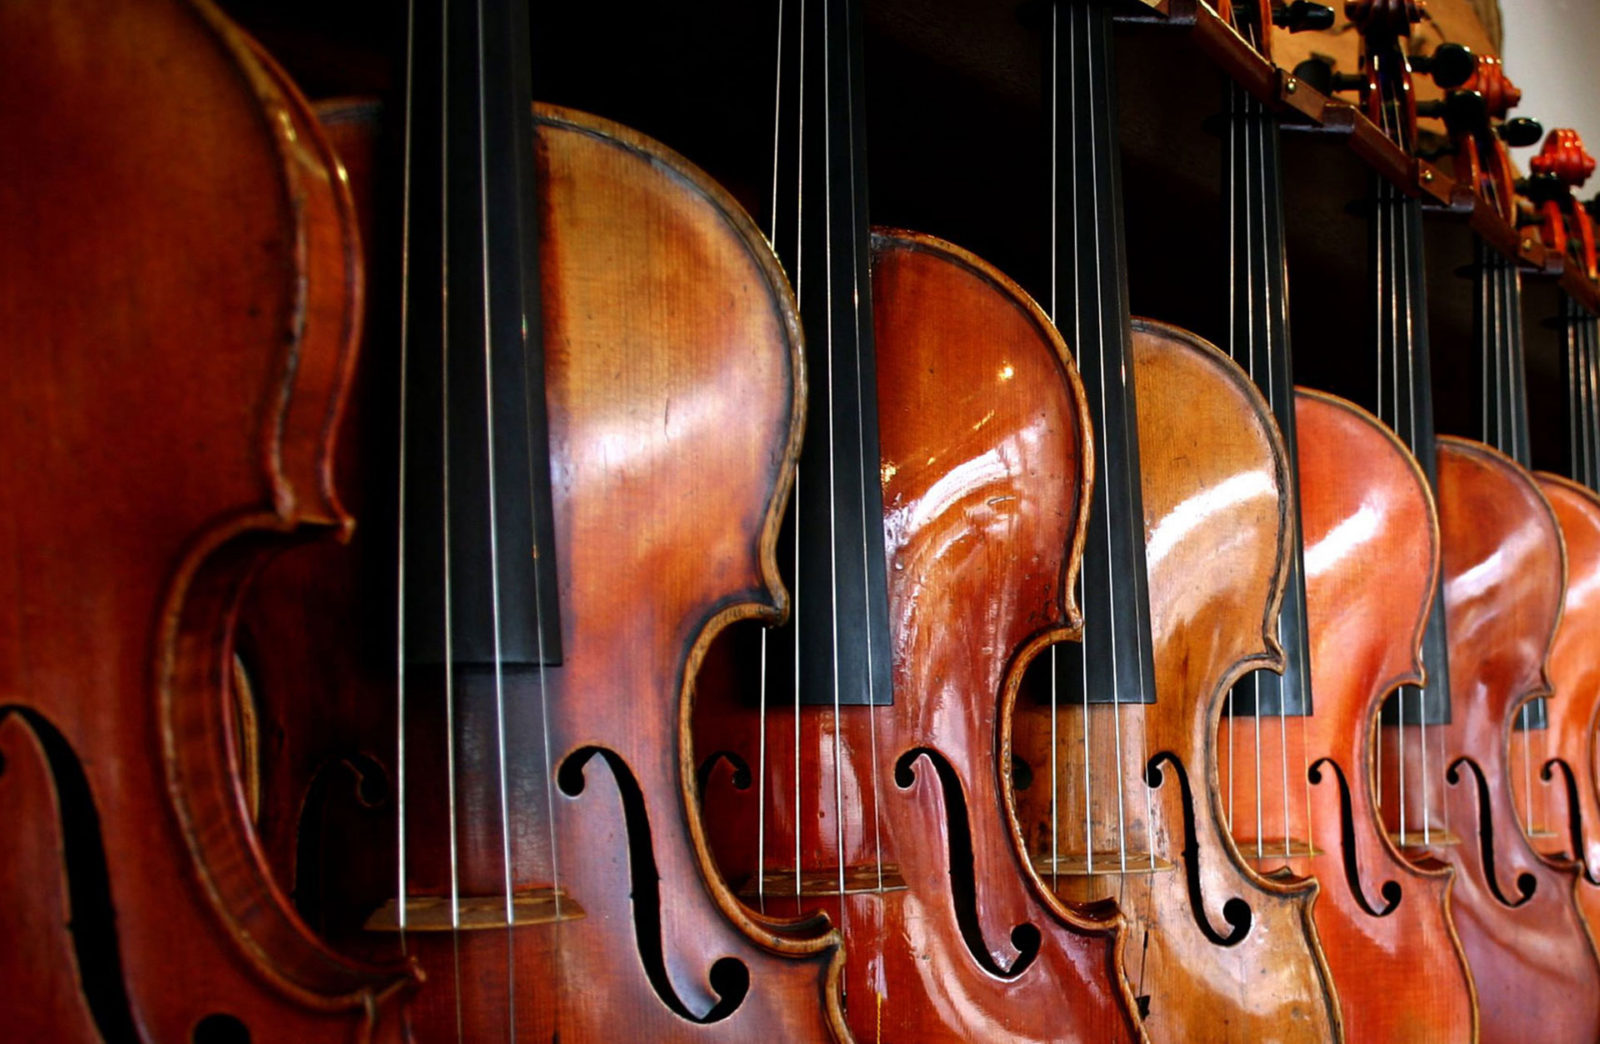 15 things you didn't know about the violin